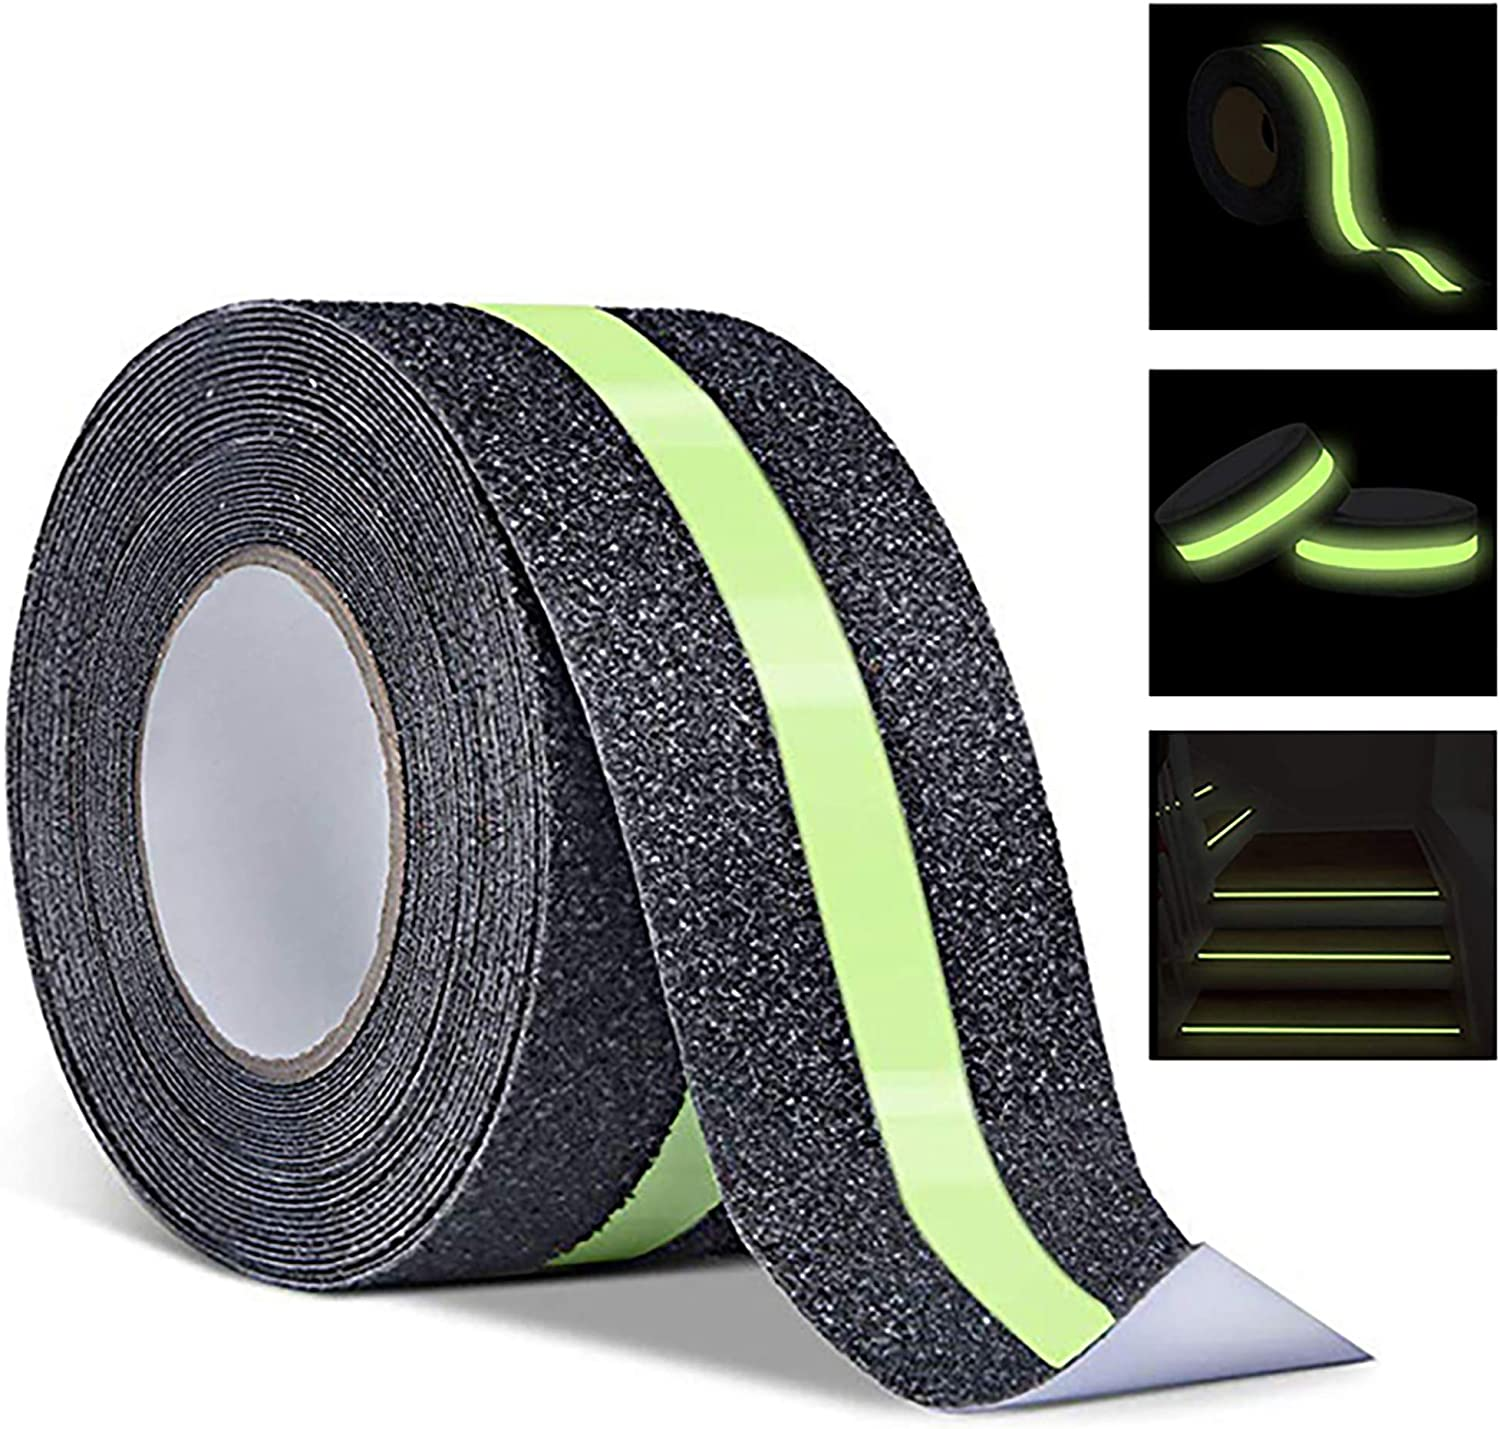 2 inch X10ft 3 Meters Night Reflective Safety Warning Tape Strip Sticker bl O3Y6